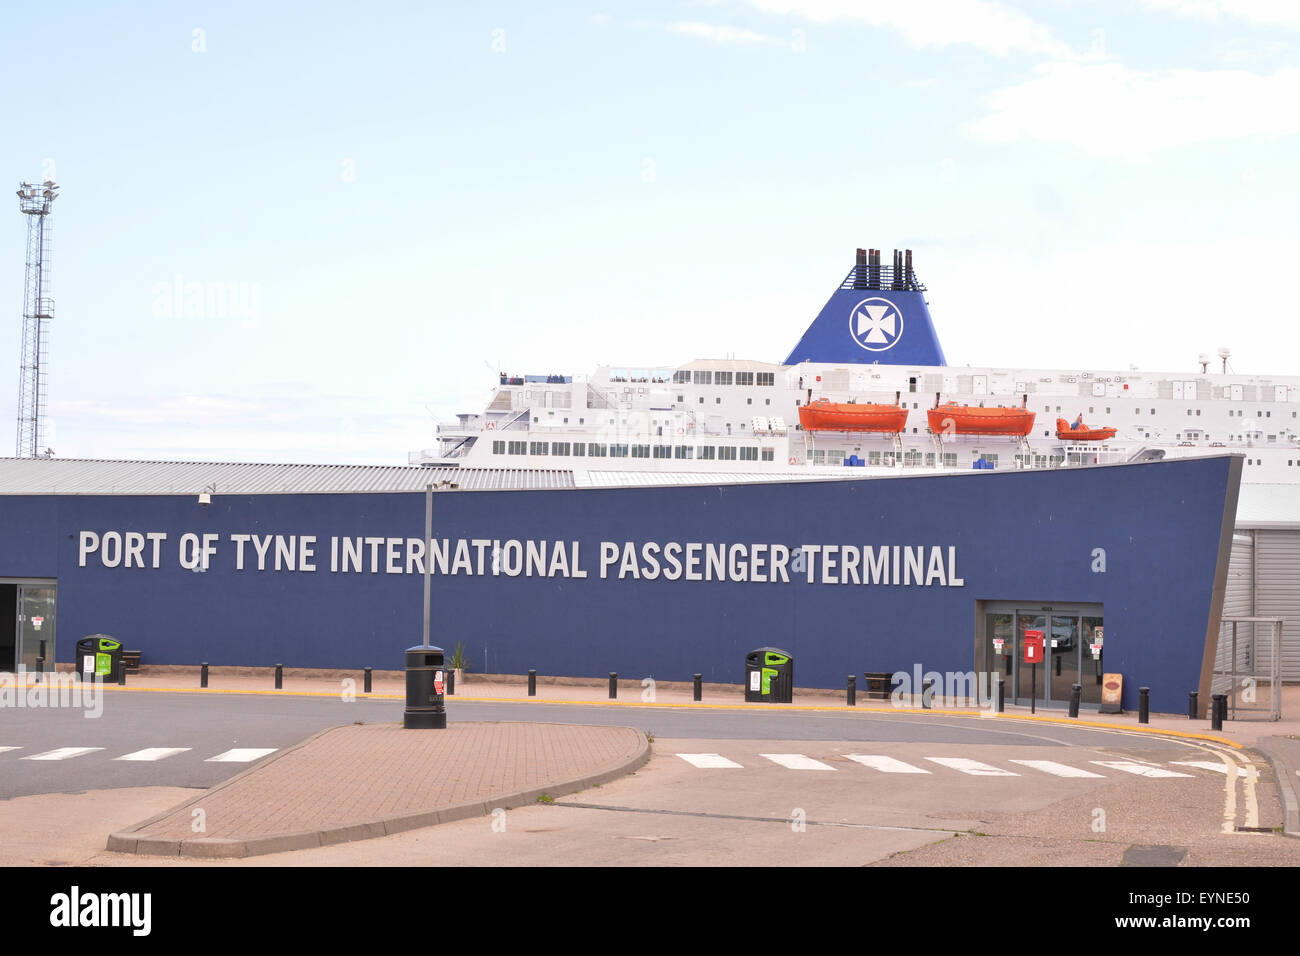 Port of Tyne International Passenger Terminal sign, with DFDS seaways ferry behind, Newcastle, England, UK - Stock Image